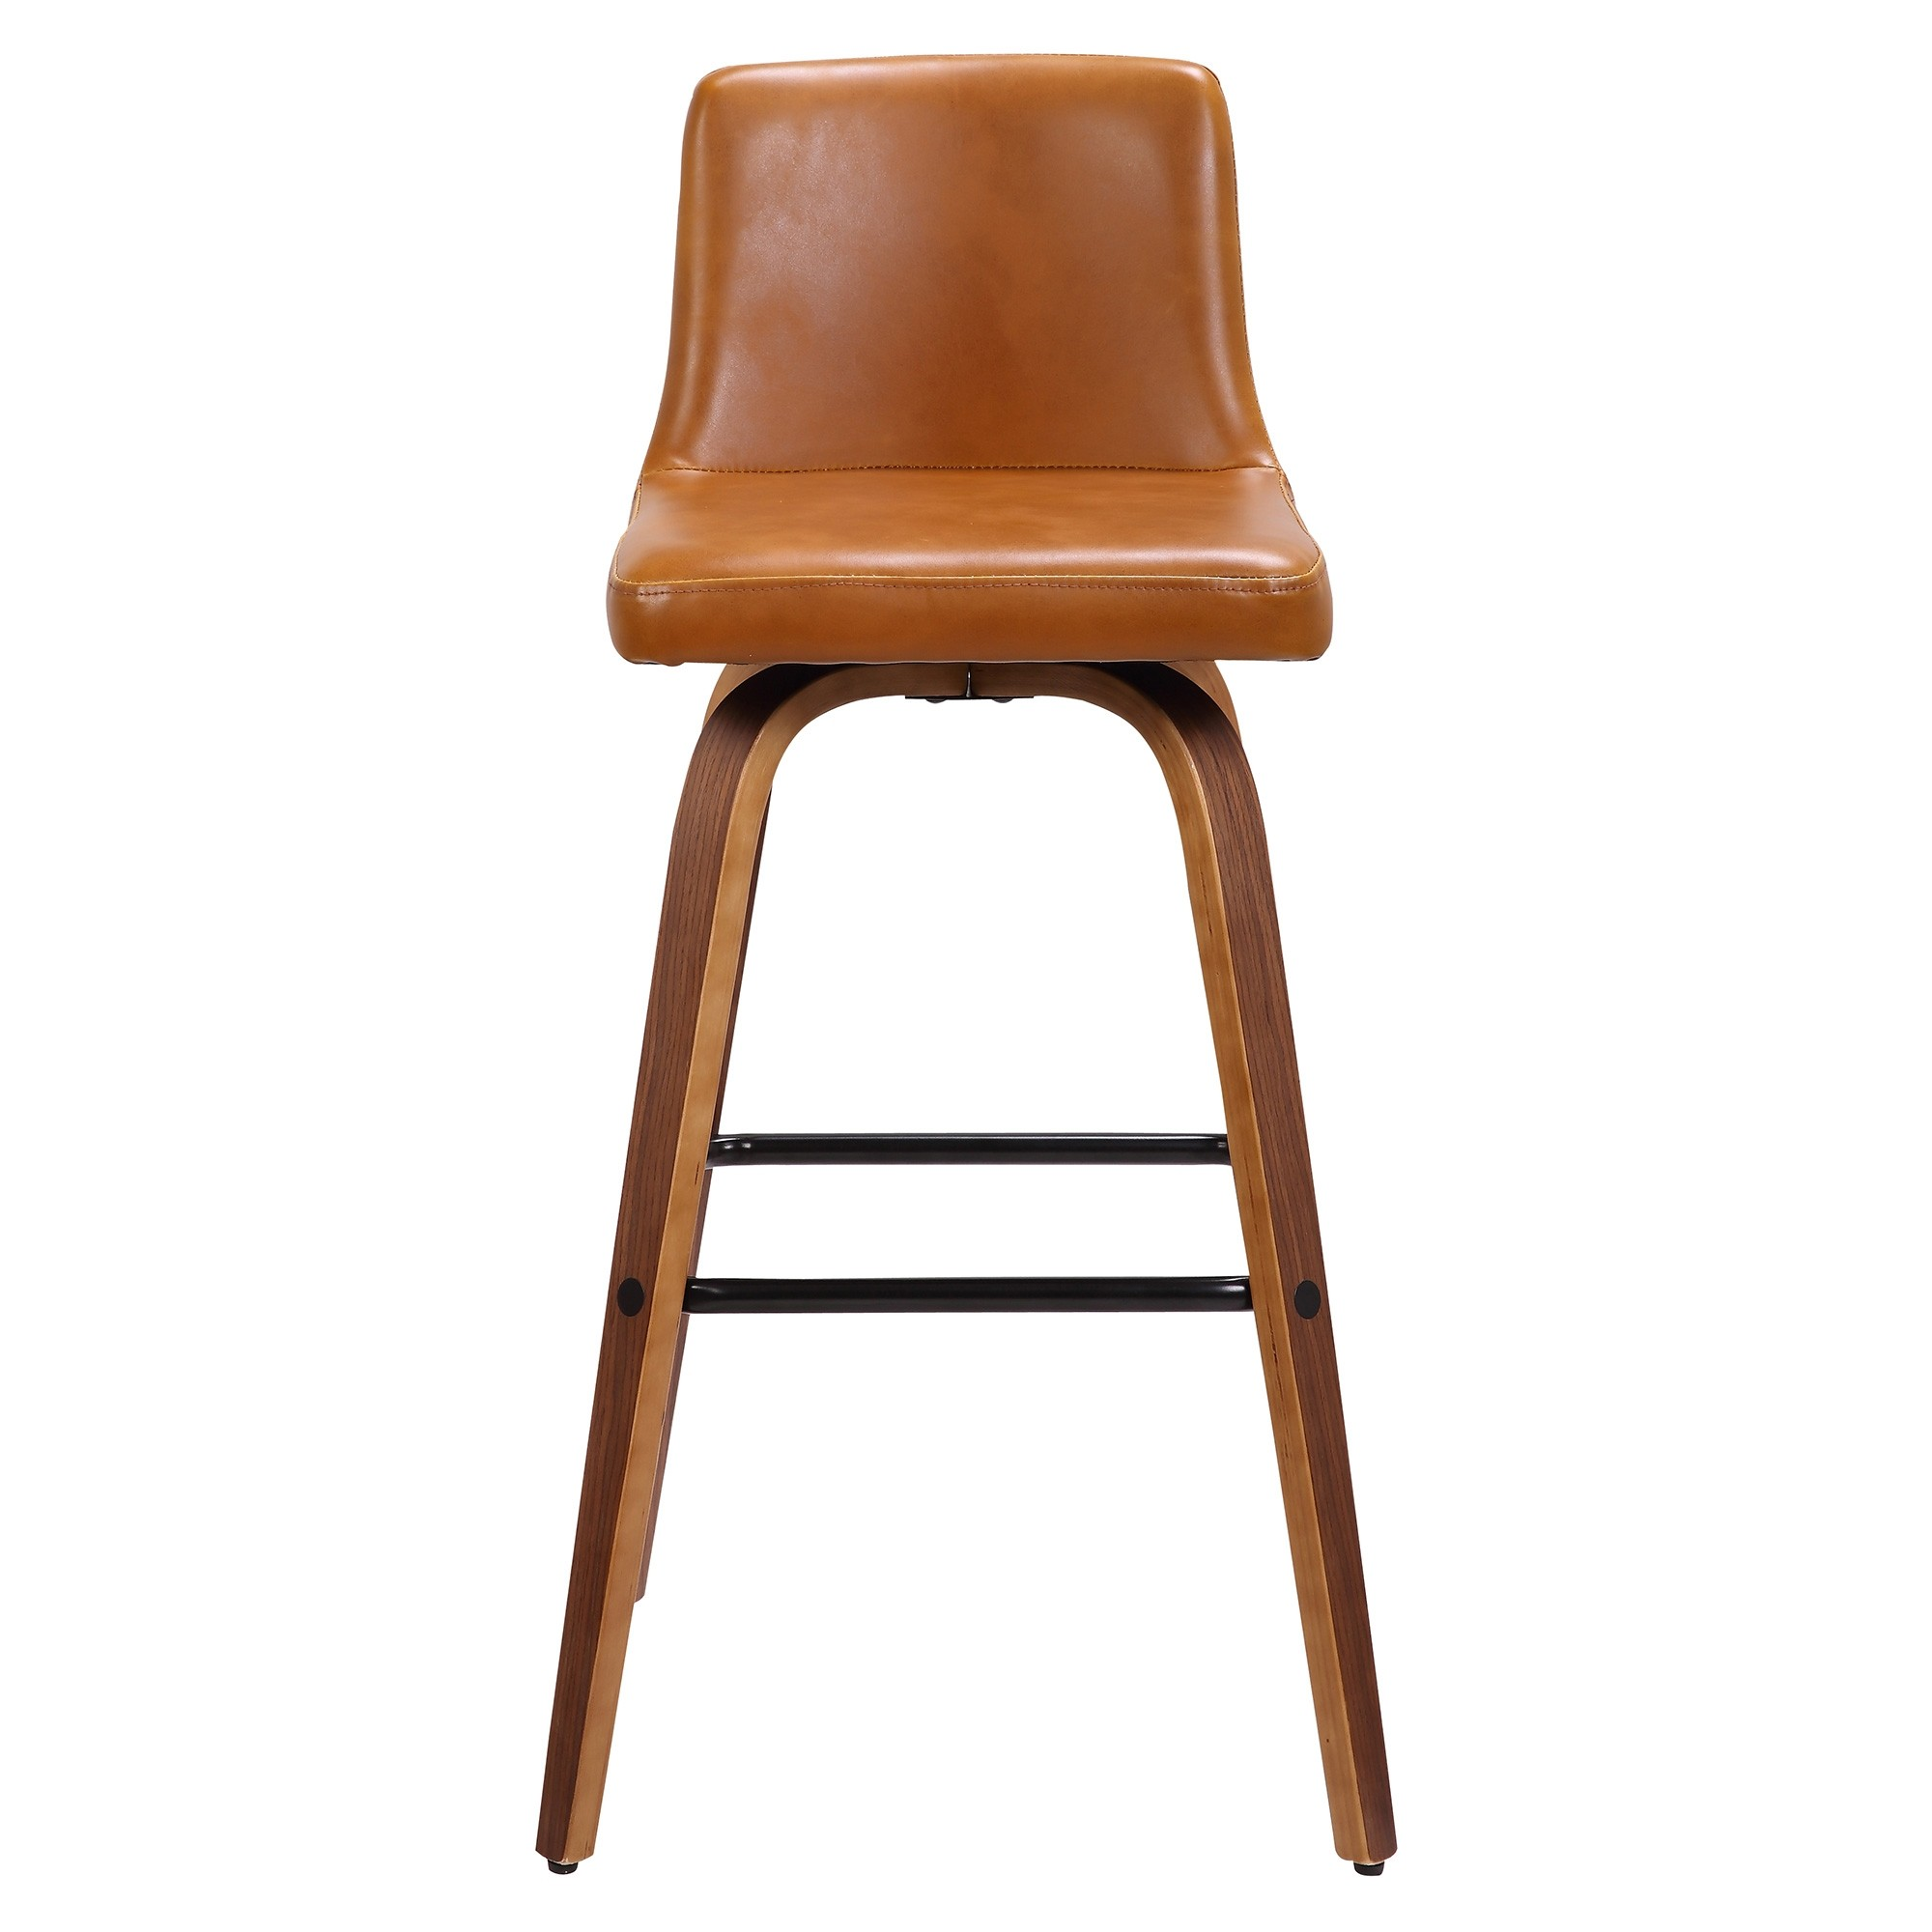 Matera Commercial Grade Bentwood Swivel Bar Chair, Faux Leather Seat, Tan / Walnut